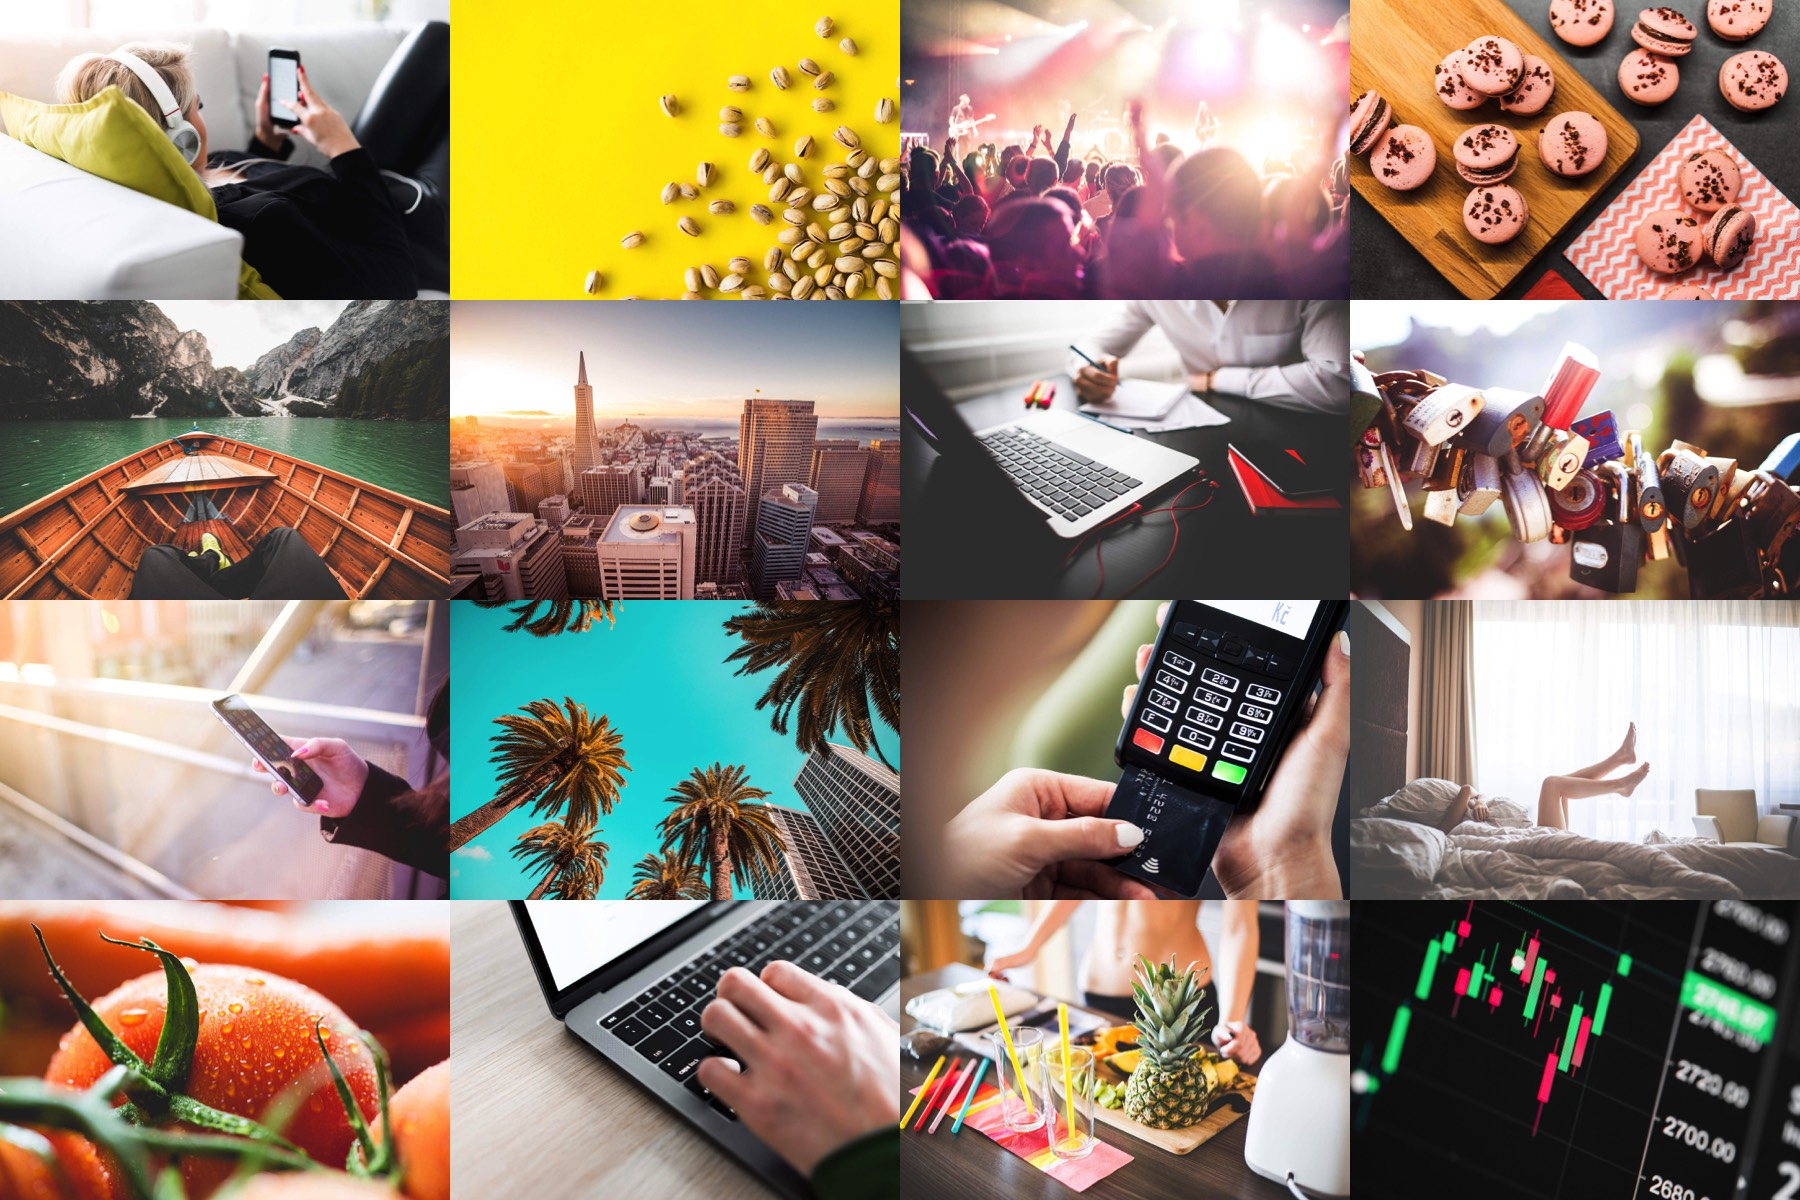 picjumbo now — beautiful free stock photos added daily